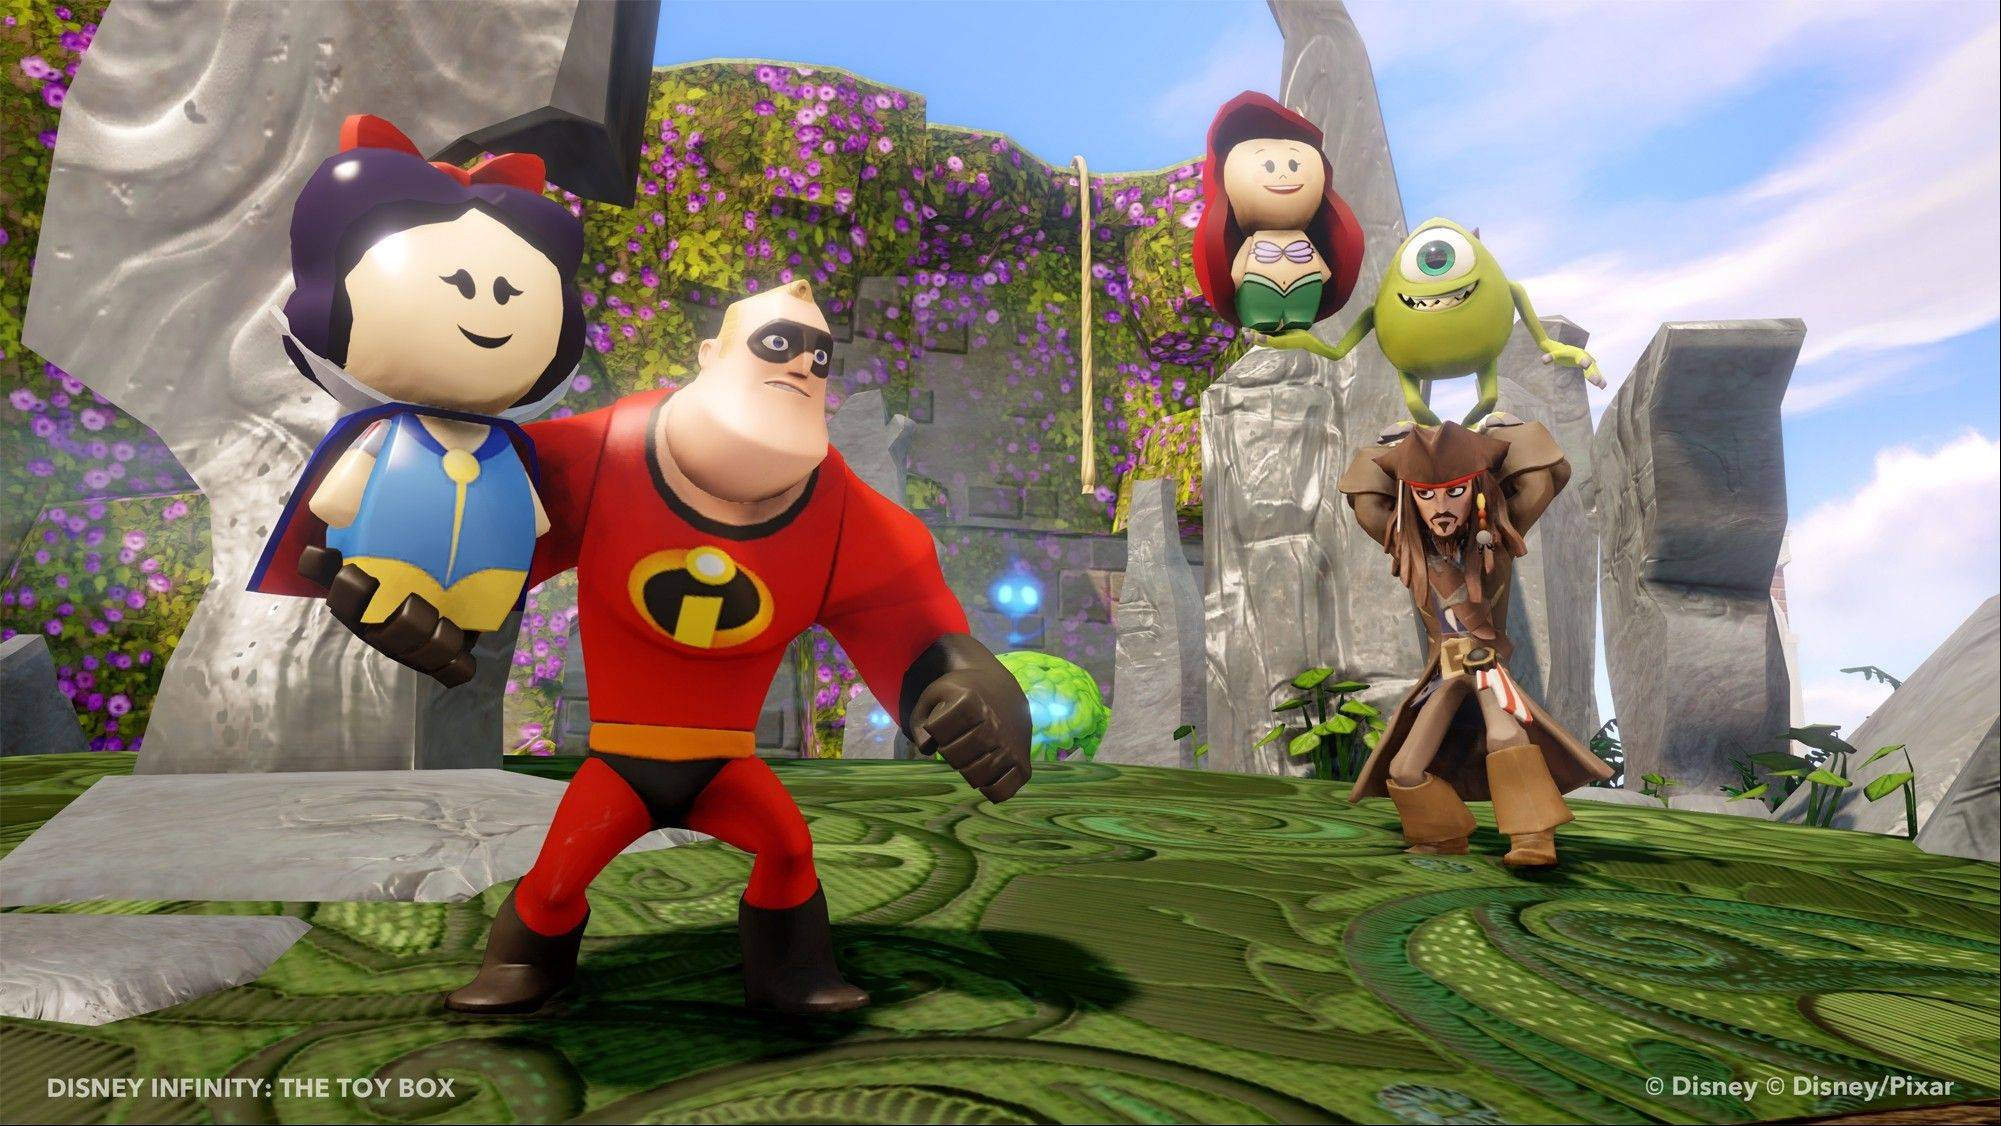 """Disney Infinity"" is an open-world, 3-D game of unlimited possibilities in which the player can control one of a myriad of Disney characters."